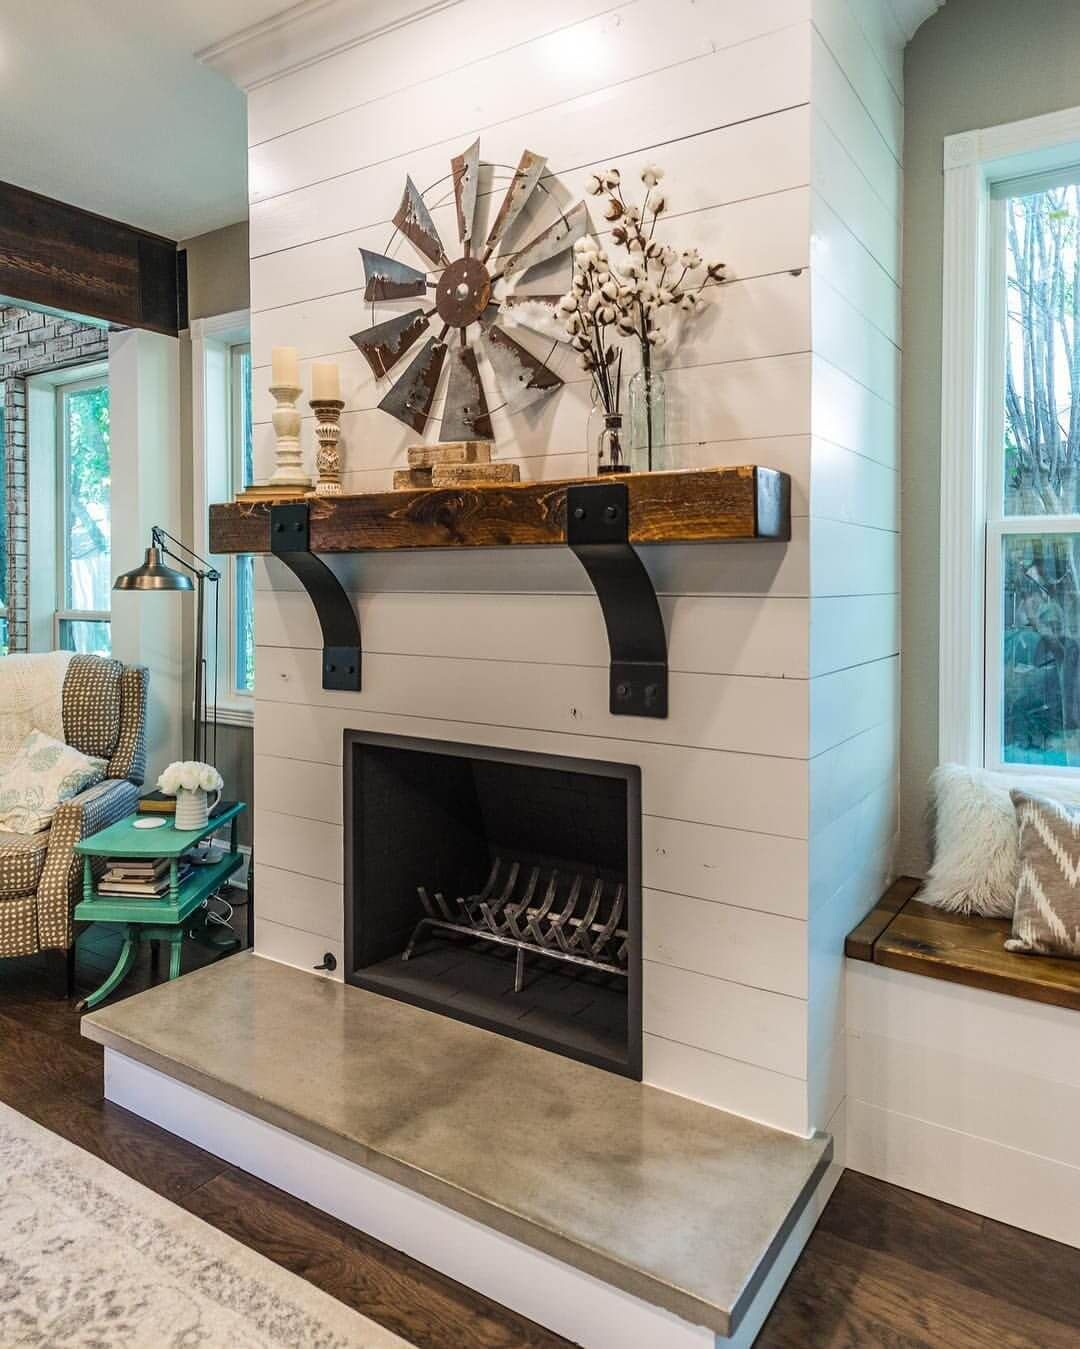 28 Farmhouse Mantel Decor Ideas To Make Your Home Unforgettable For Every Season Brick Fireplace Makeover Fireplace Remodel Farmhouse Fireplace Decor